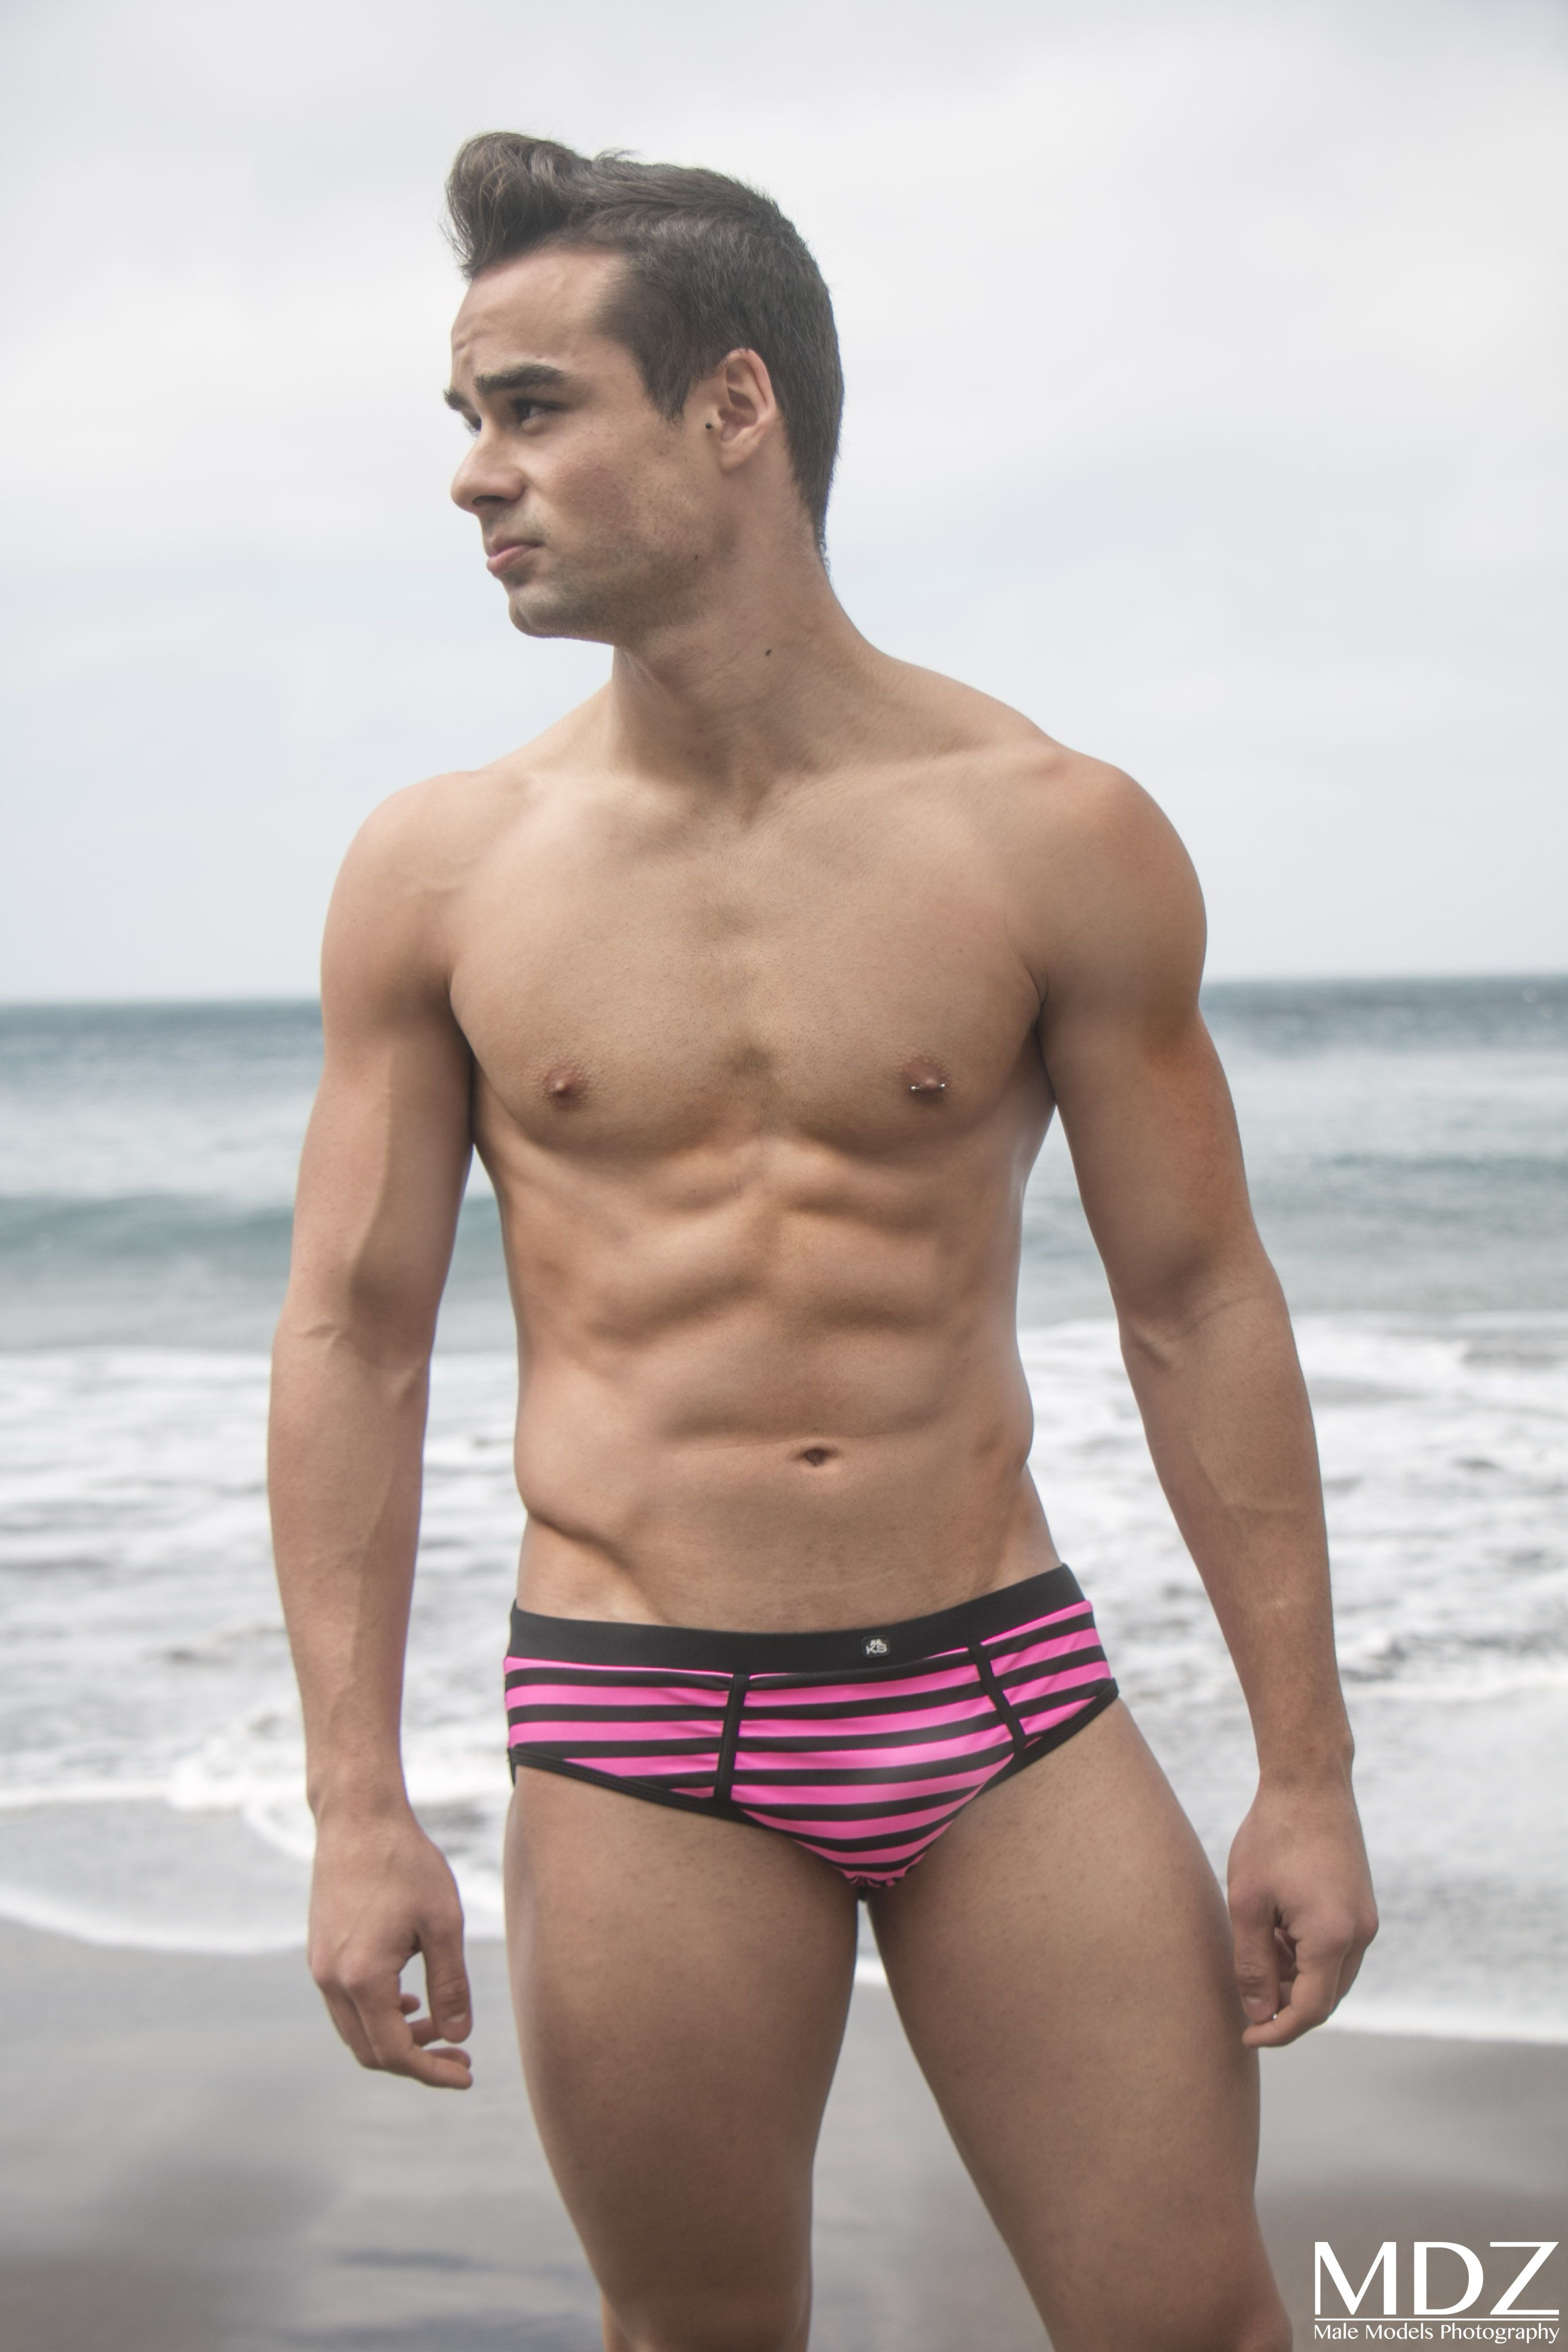 c043f6f506a #male #model #MDZ #trunks #swimwear #beach #sand #summer. Find this Pin and  more on Men Underwear ...